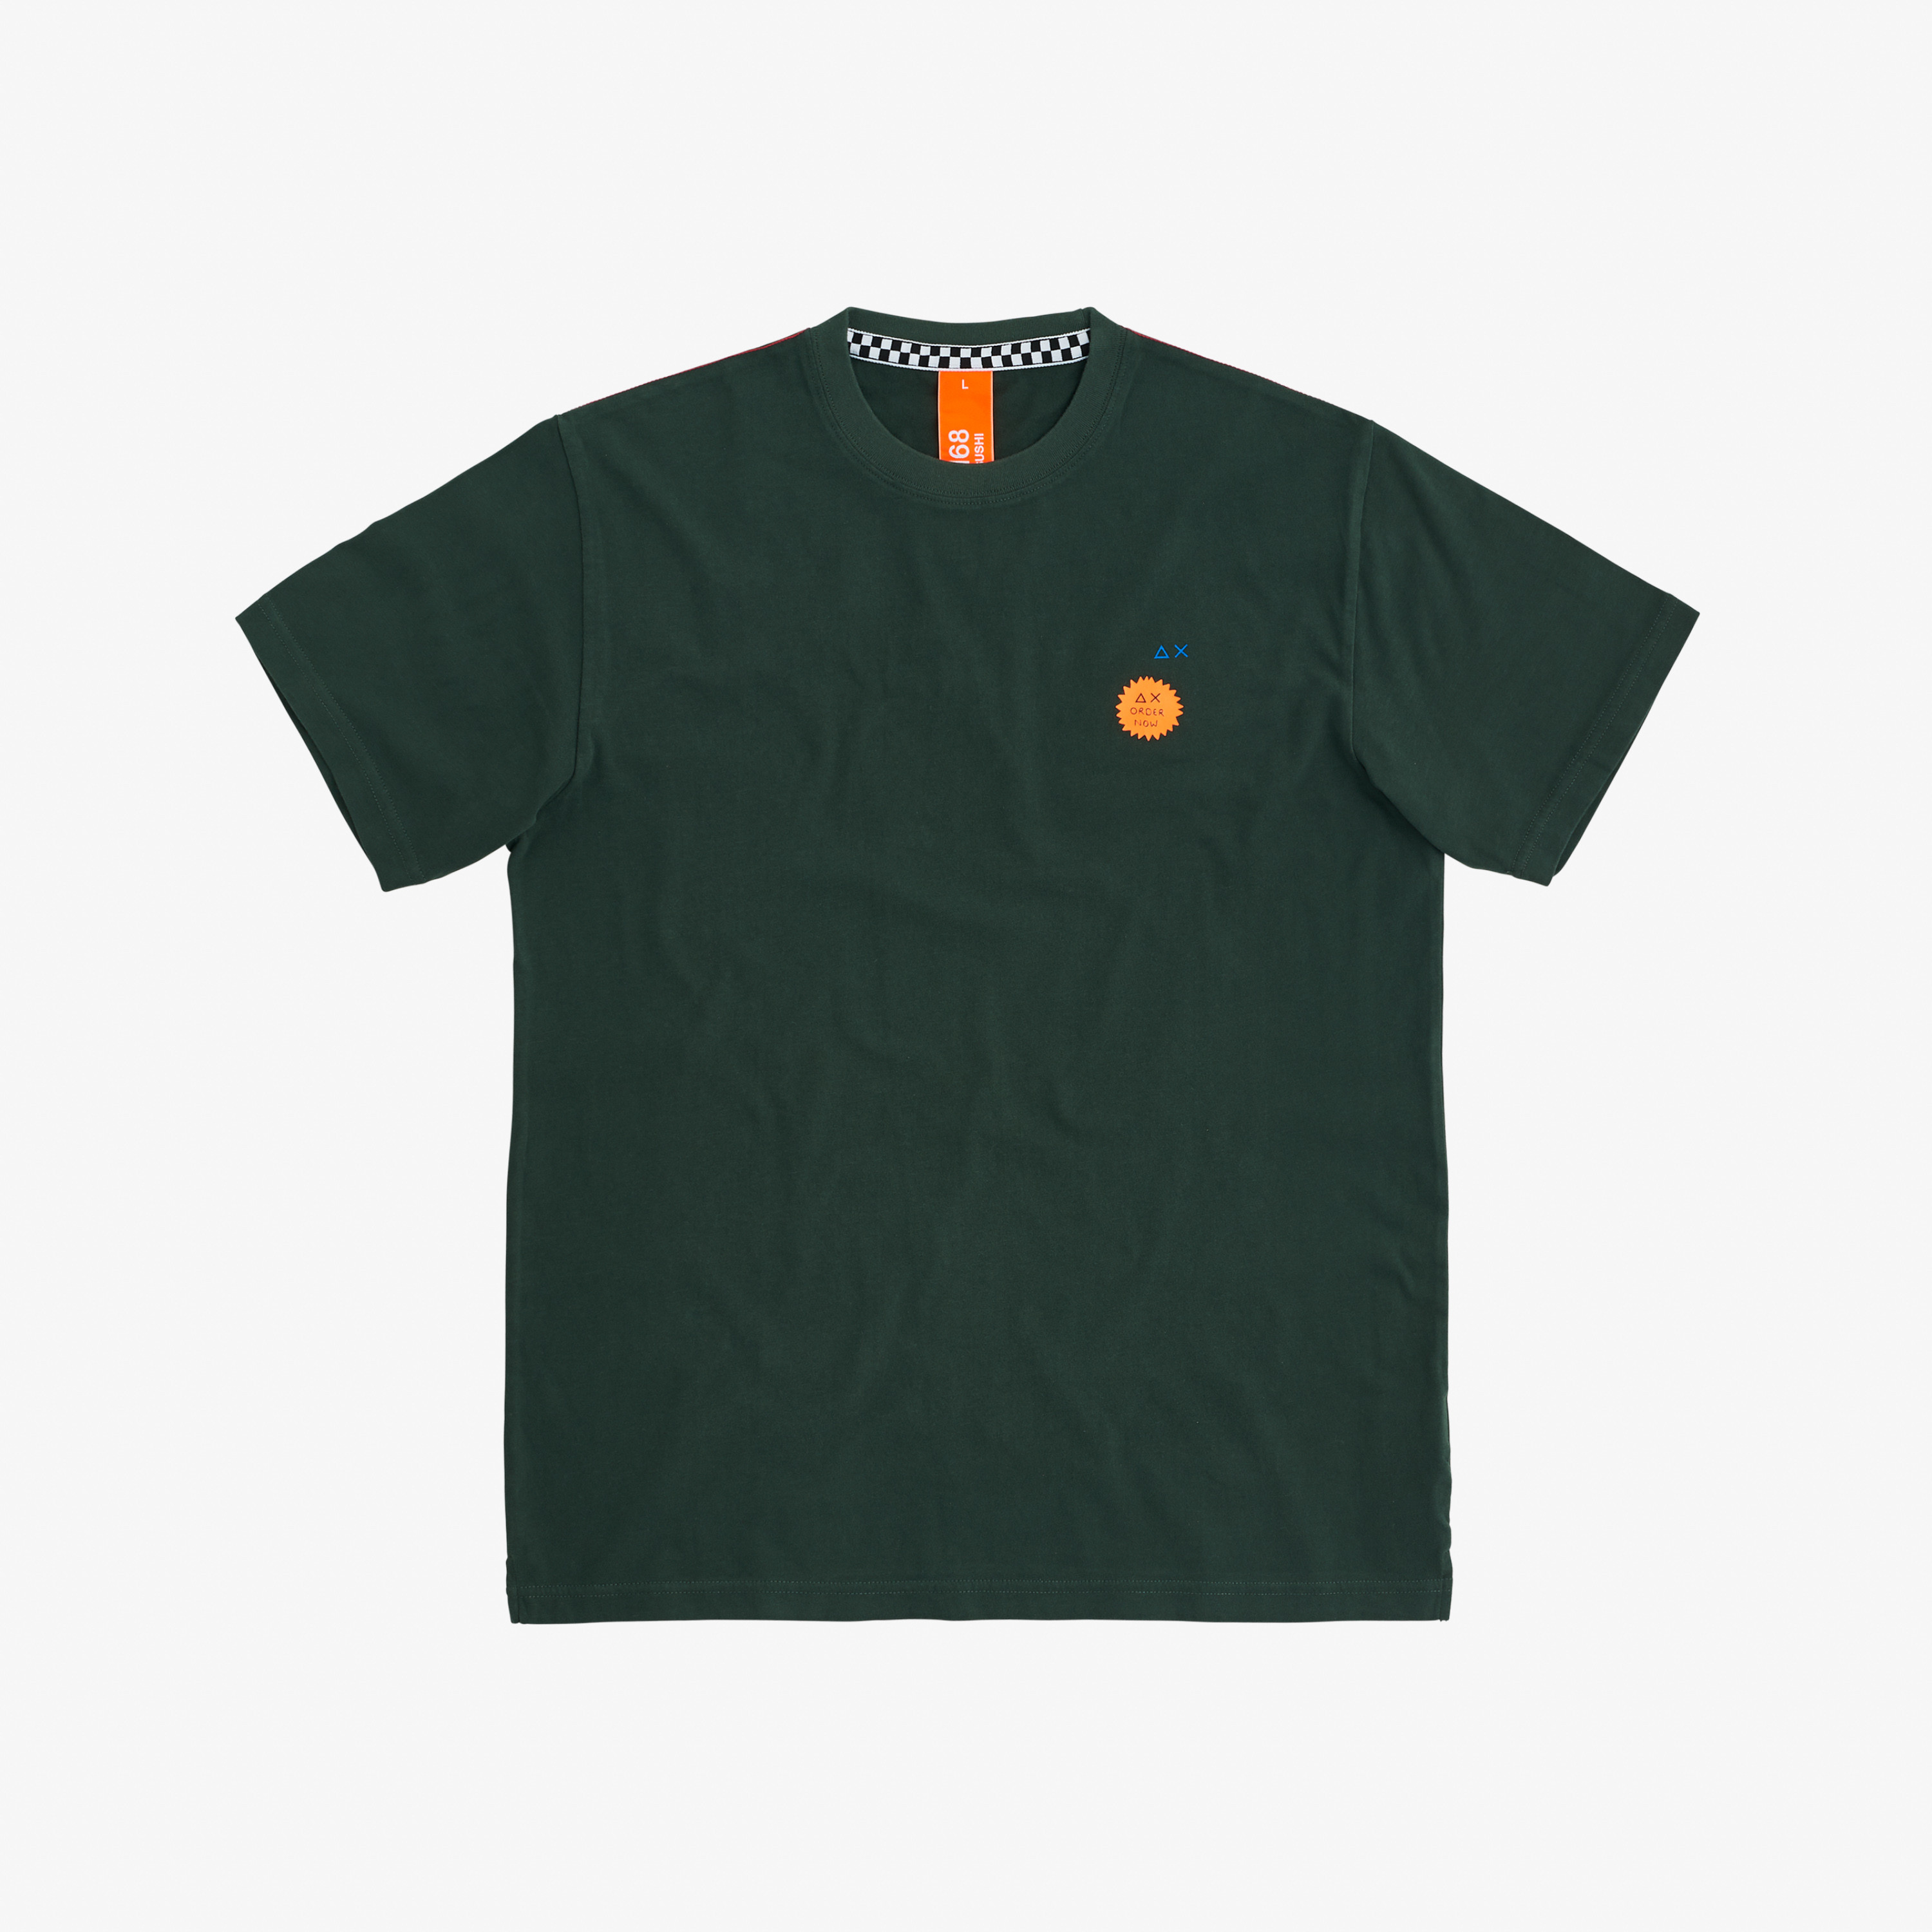 ROUND T-SHIRT WITH PRINT FANCY S/S VERDE SCURO